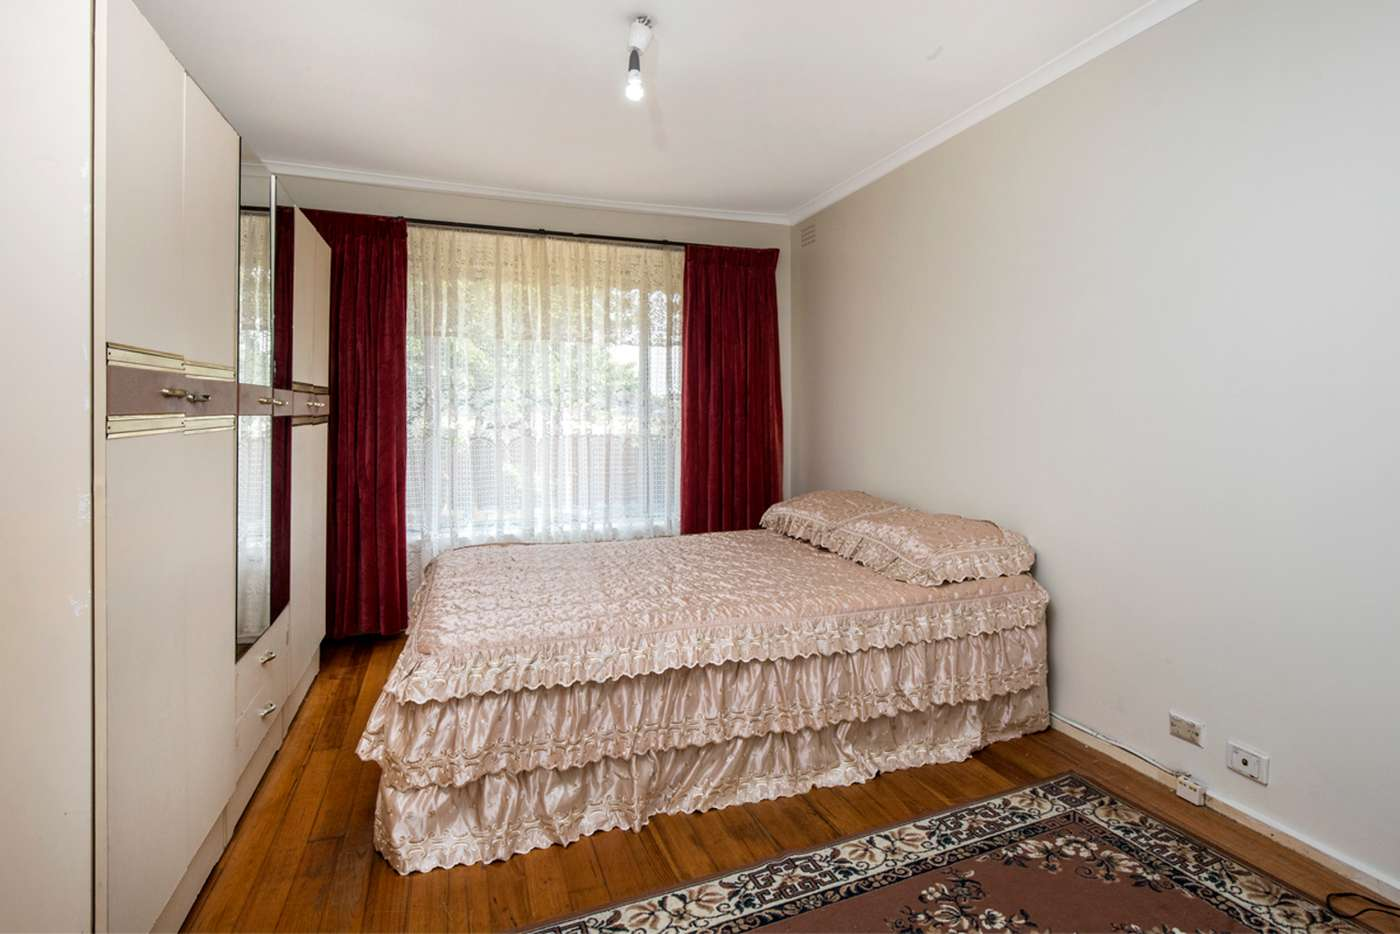 Fifth view of Homely house listing, 7 Waratah Street, Campbellfield VIC 3061